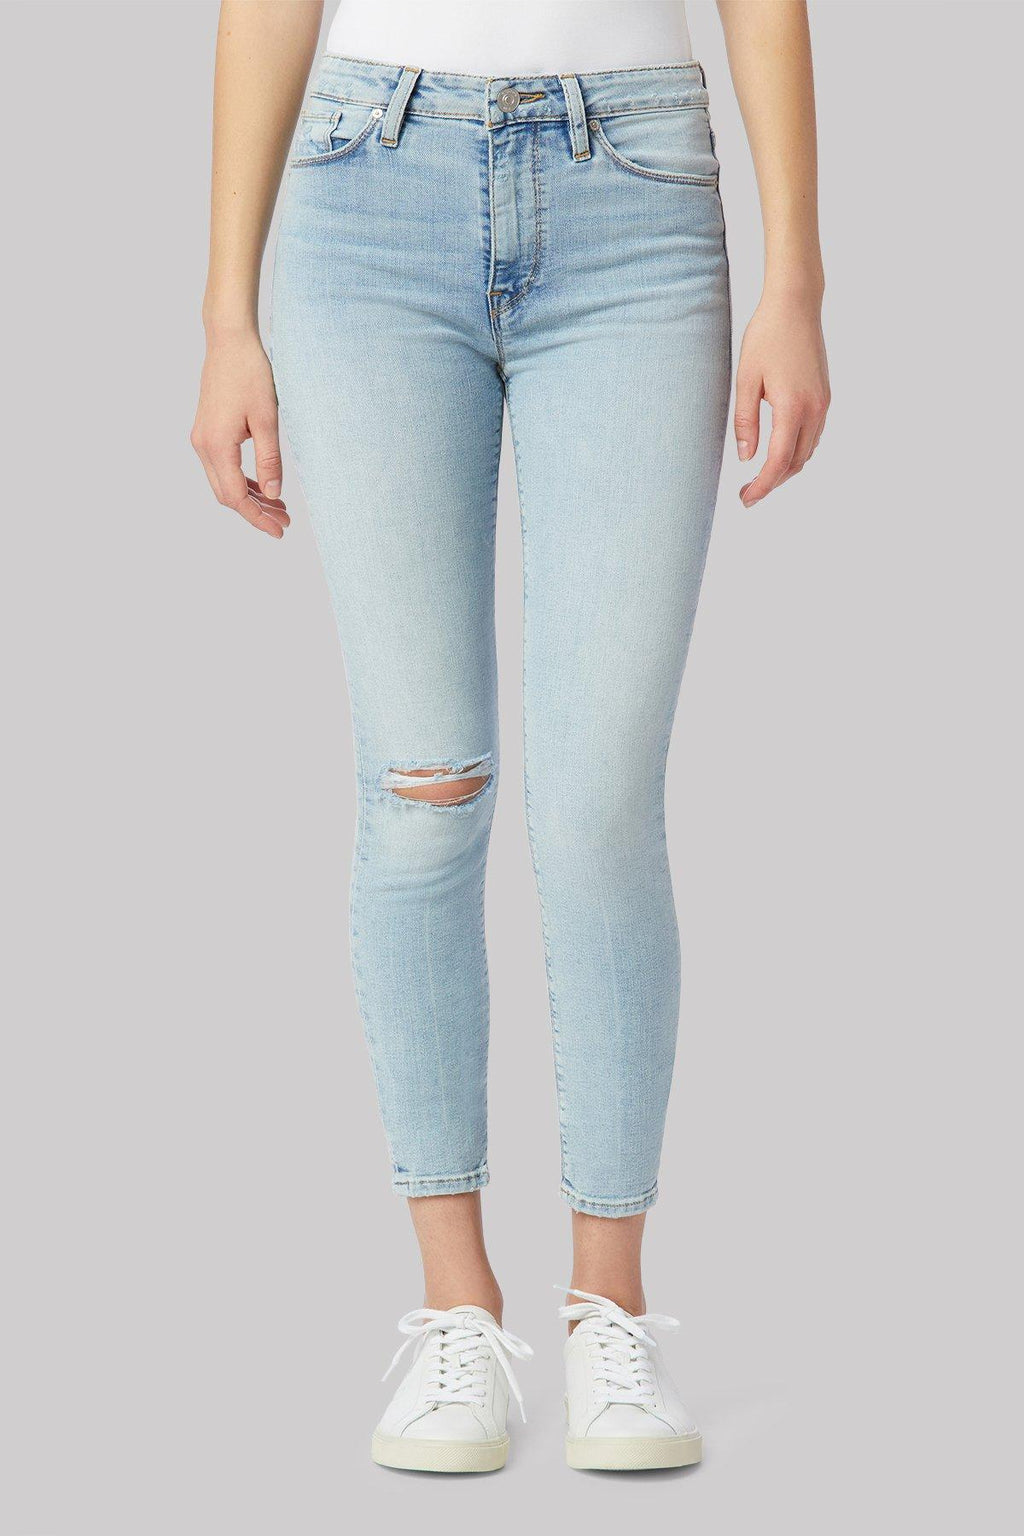 Hudson Barbara High-Rise Super Skinny Crop Jean - 13 Hub Lane   |